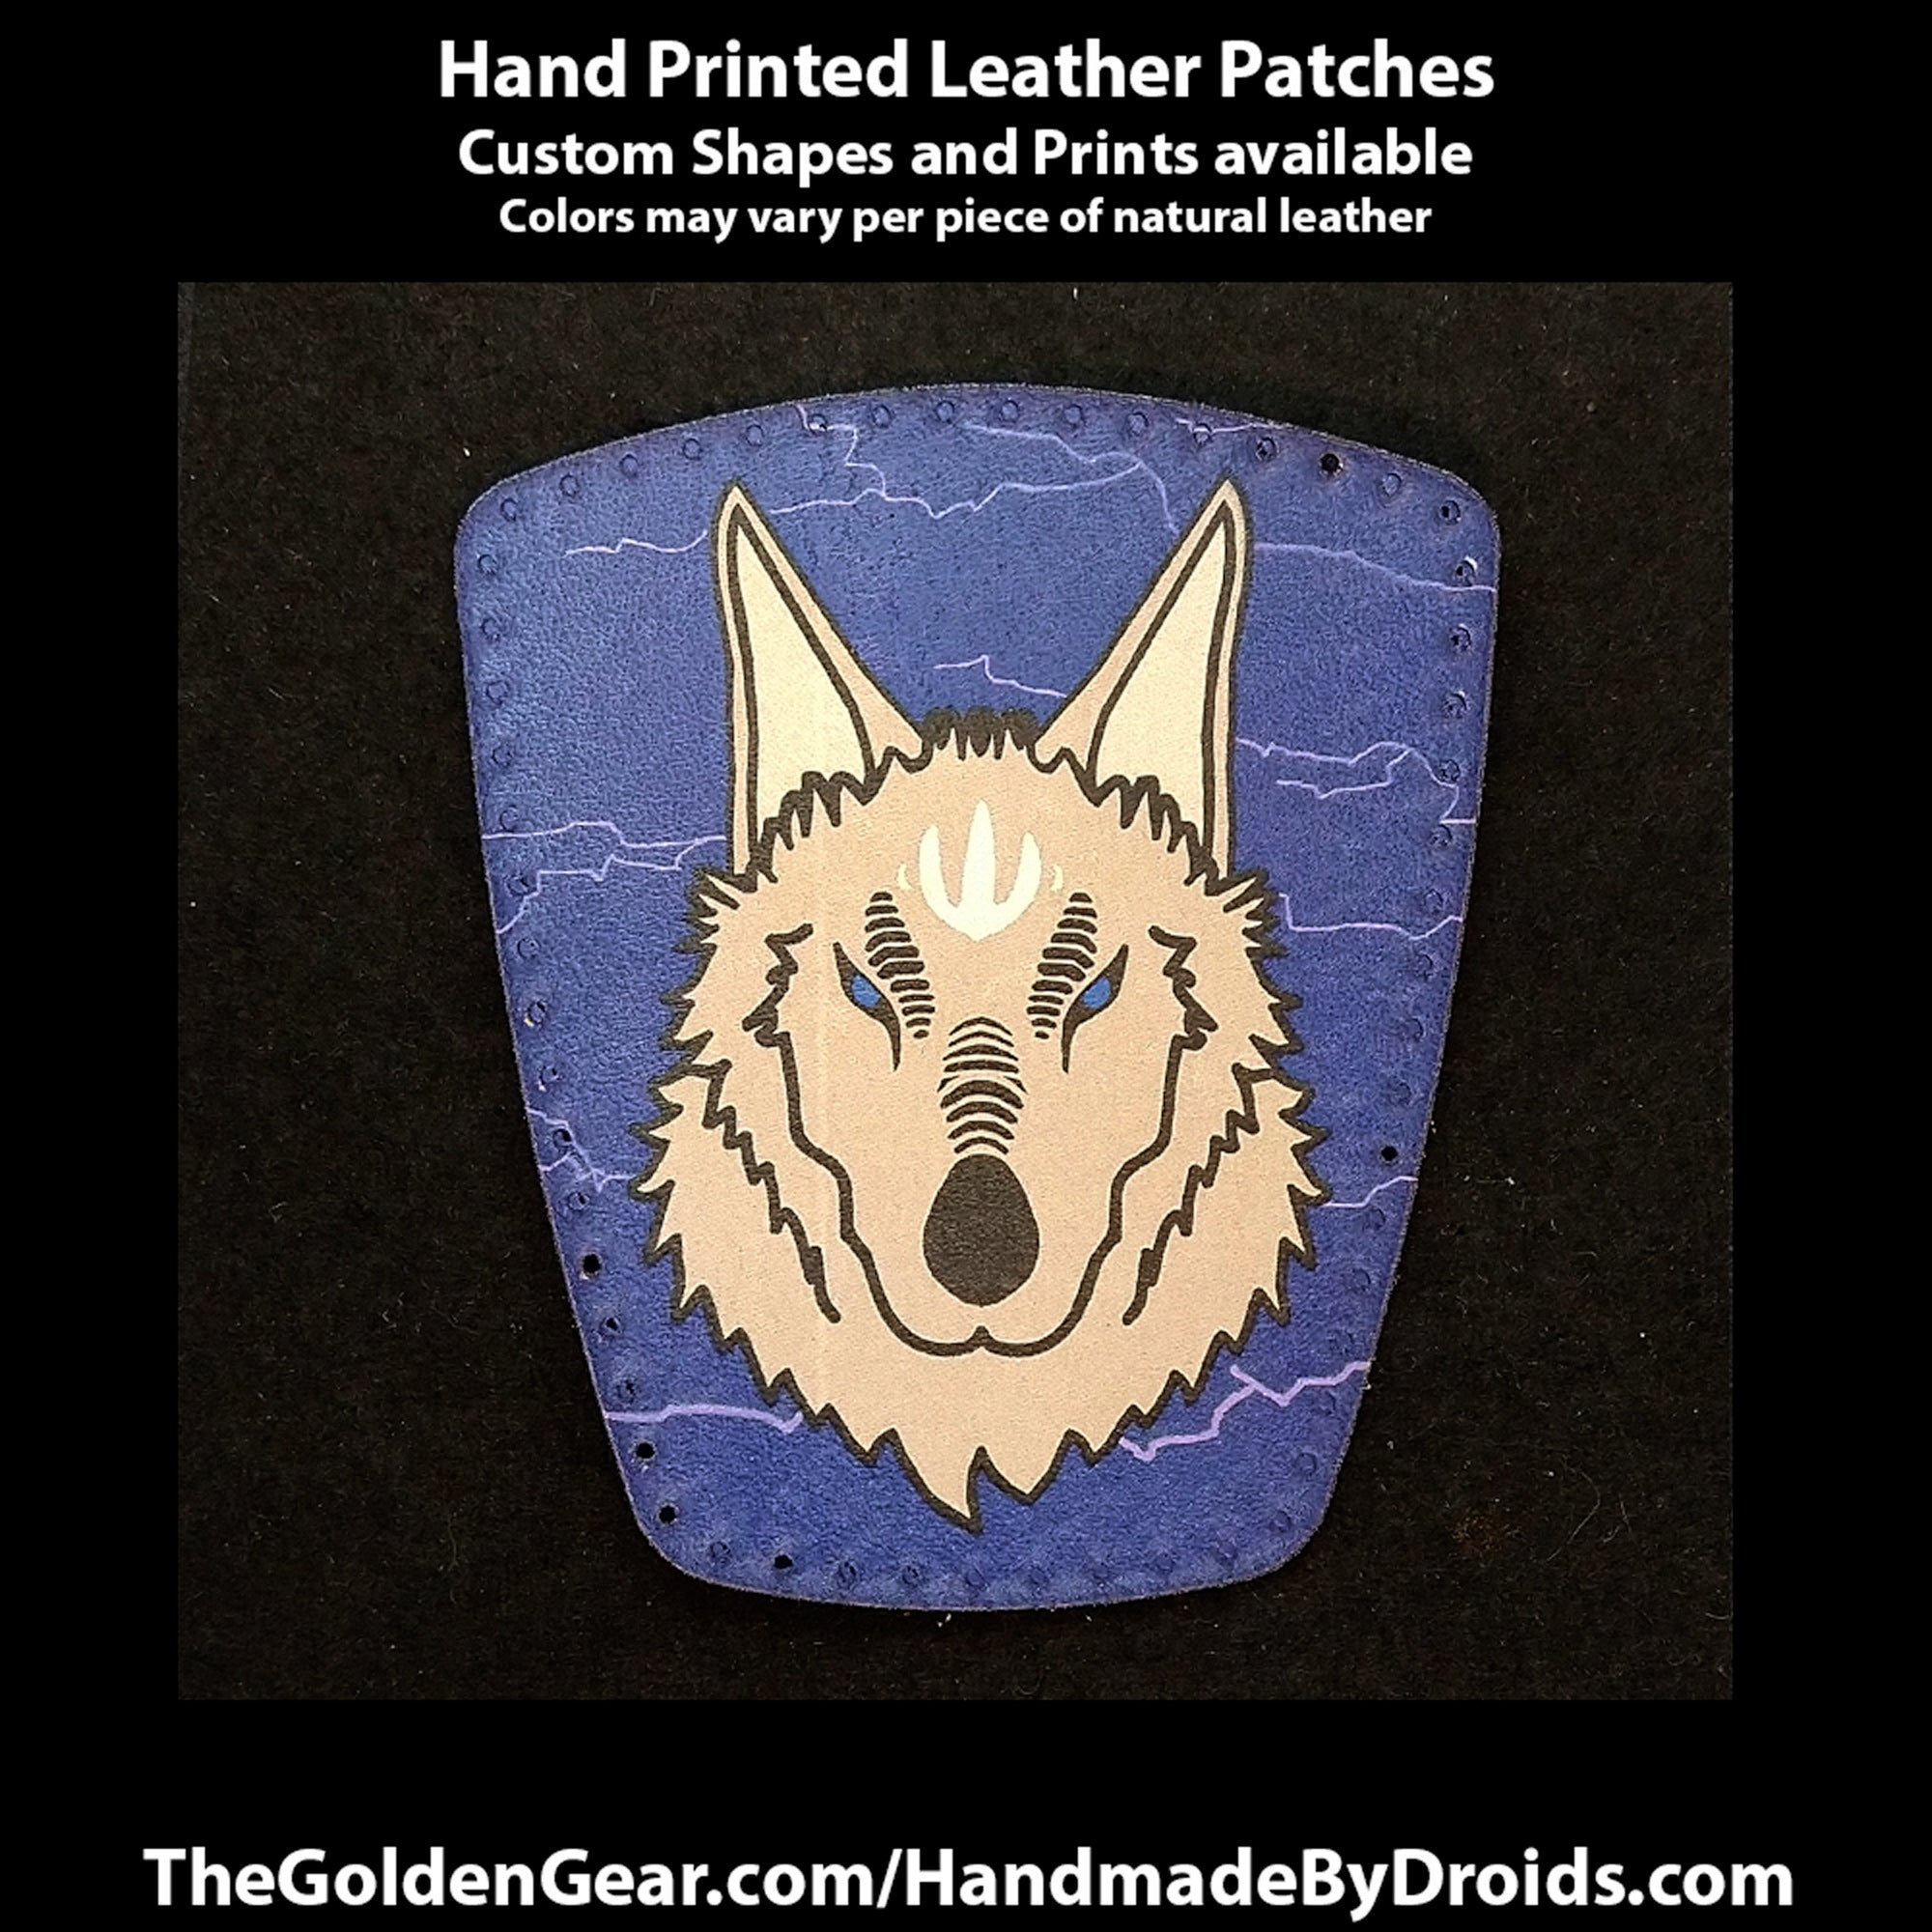 Wolves of Lothal (Star Wars) 4 inch Leather Patch